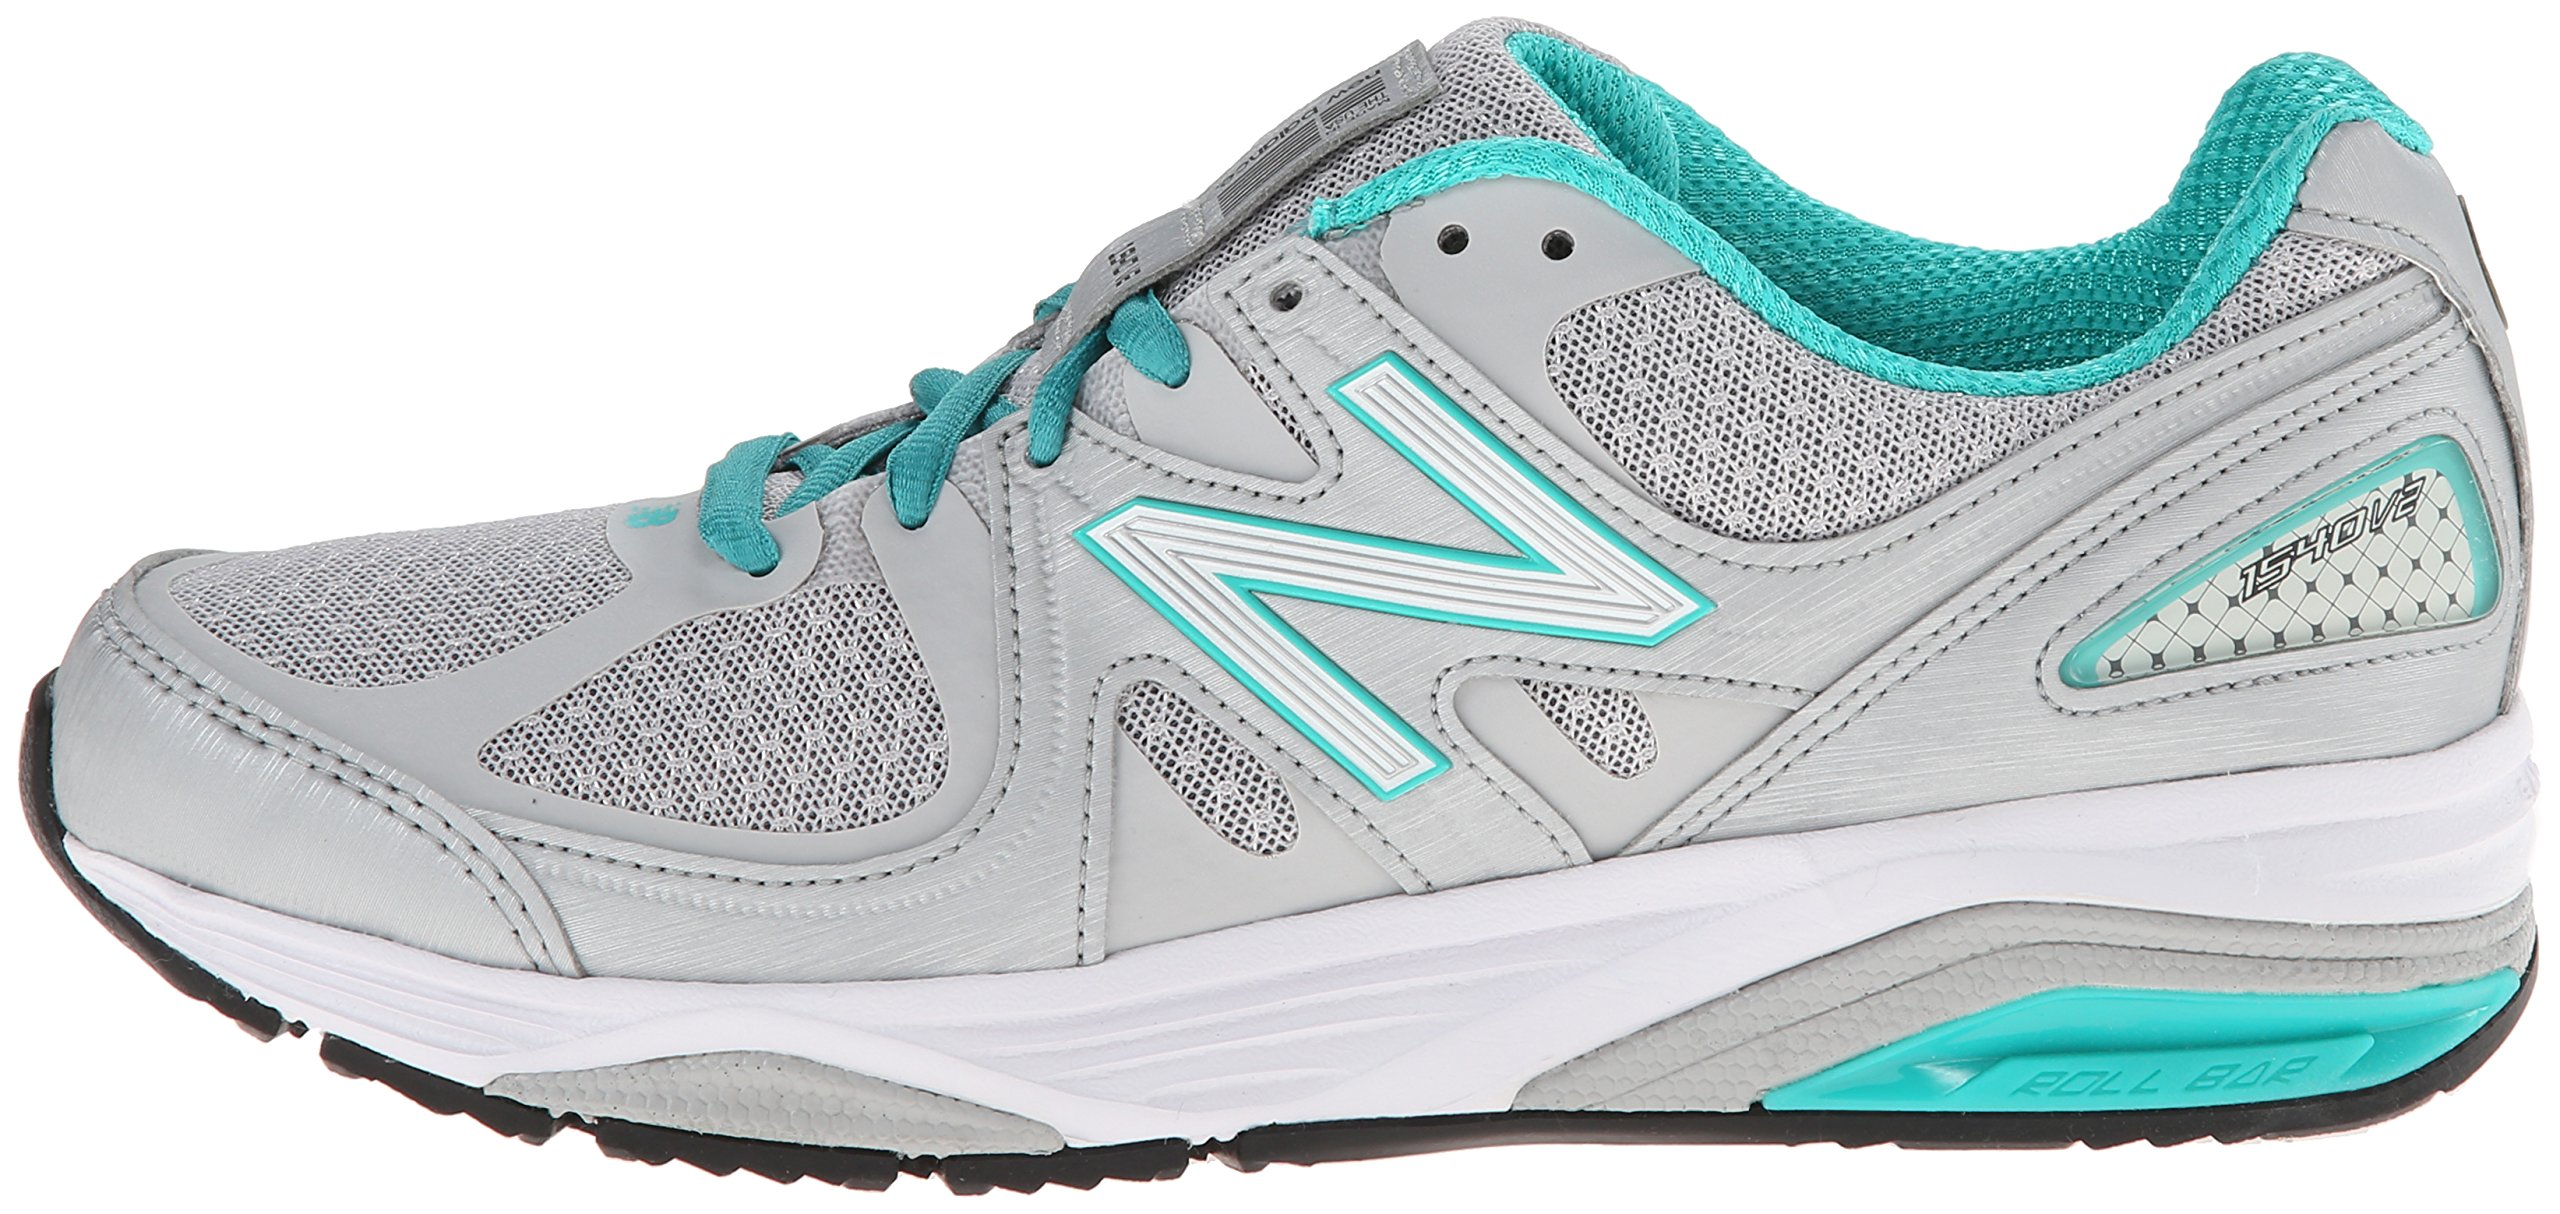 New Balance Women's W1540V2 Running Shoe Running Shoe,Silver/Grey,7 D US by New Balance (Image #5)